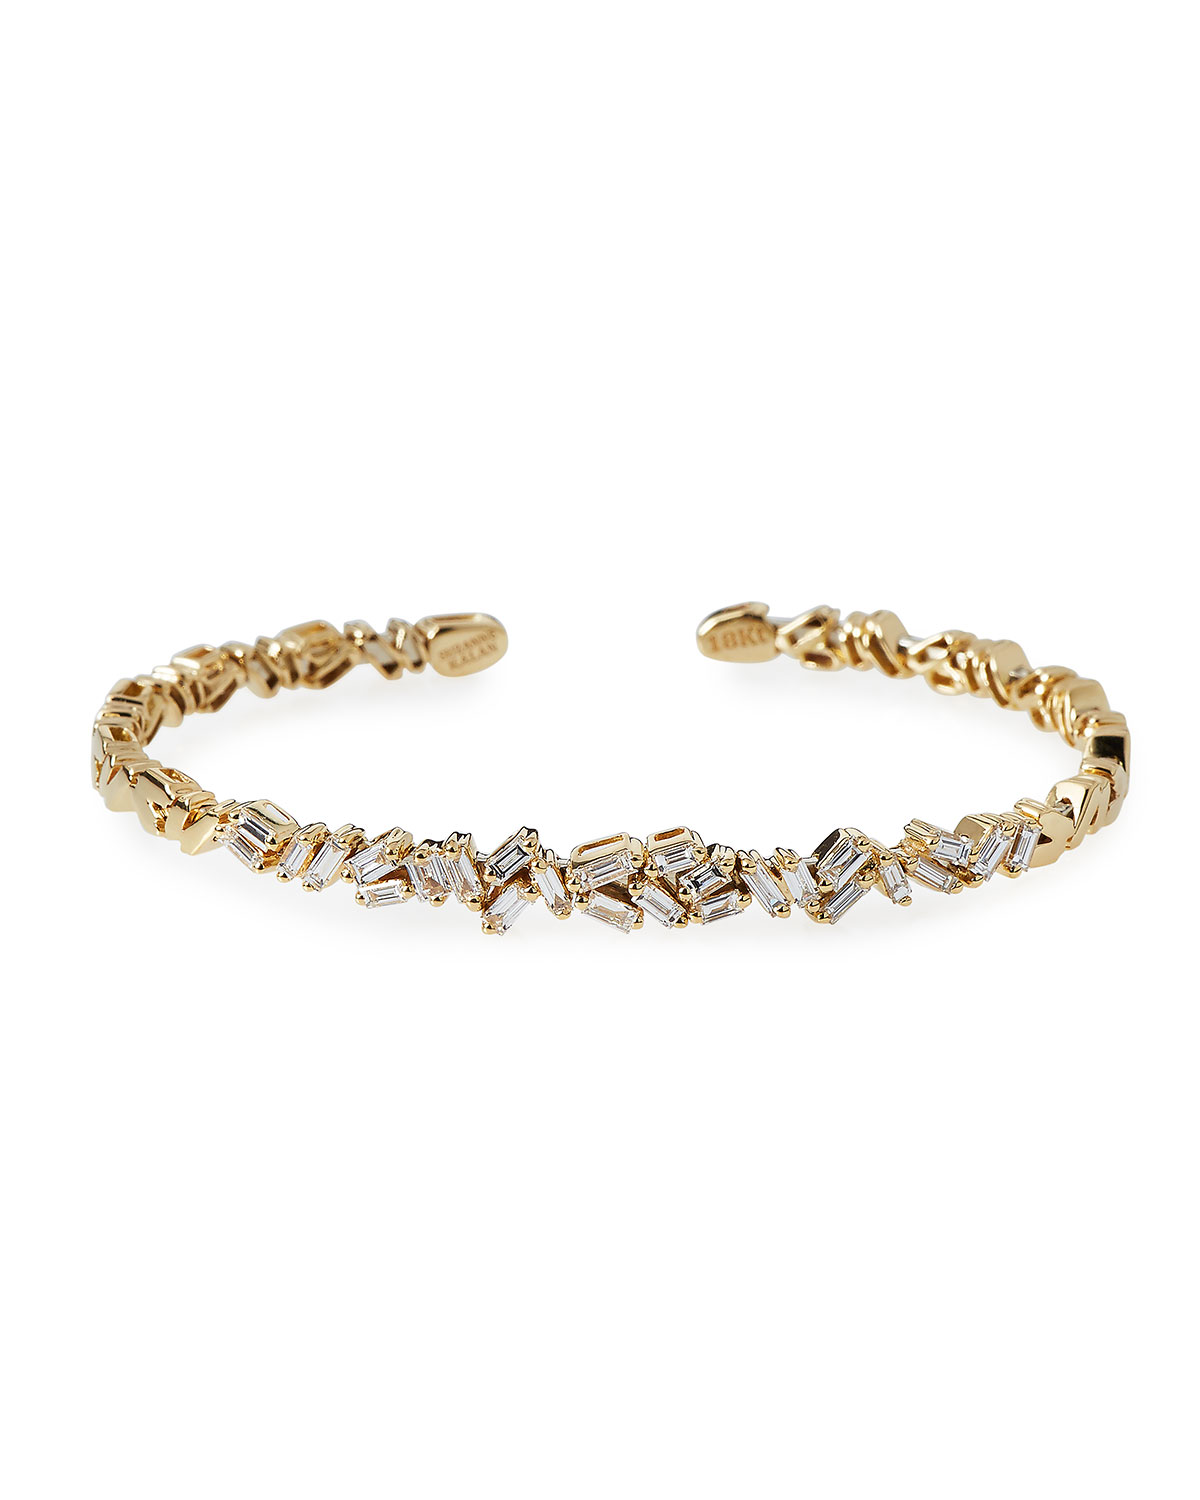 Suzanne Kalan Tilted Baguette Diamond Bangle in 18K White Gold t7onyrCNW